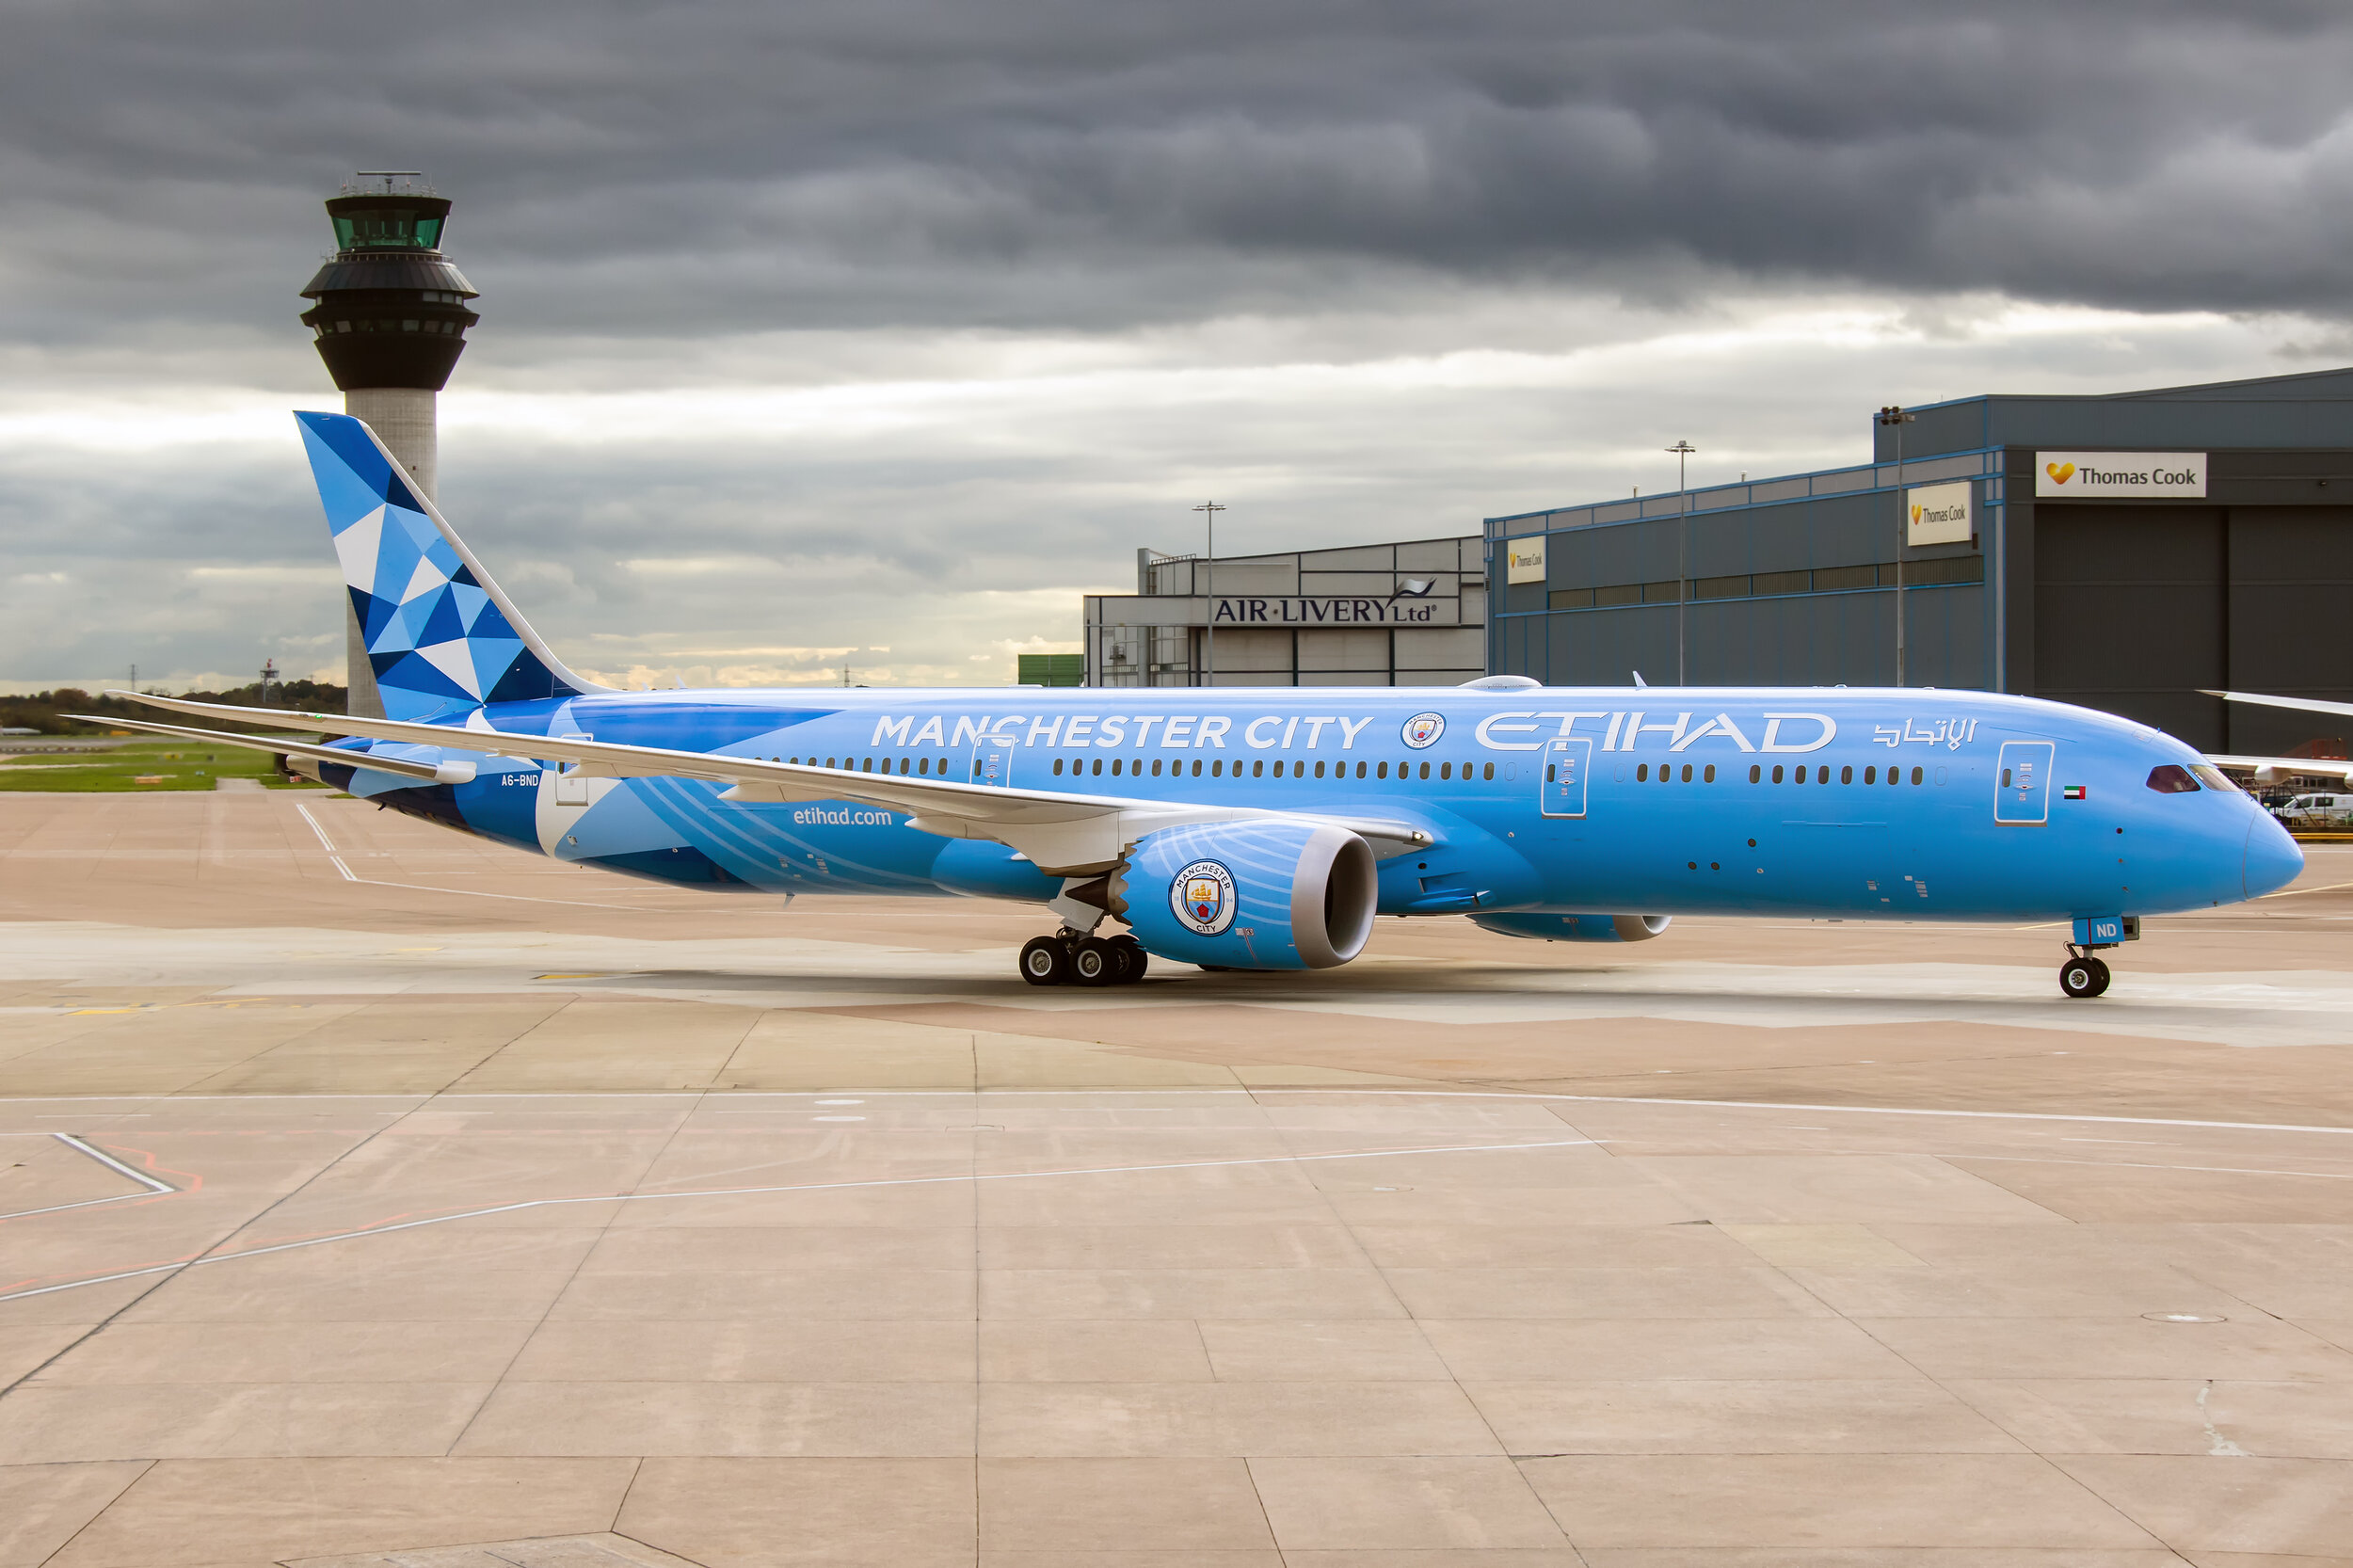 An excellent shot from Enda Burke showing Etihad's first commercial flight with their Manchester City Livery B787-9 A6-BND. It really had to be Manchester didn't it? Well done Etihad! 21st October 2019.